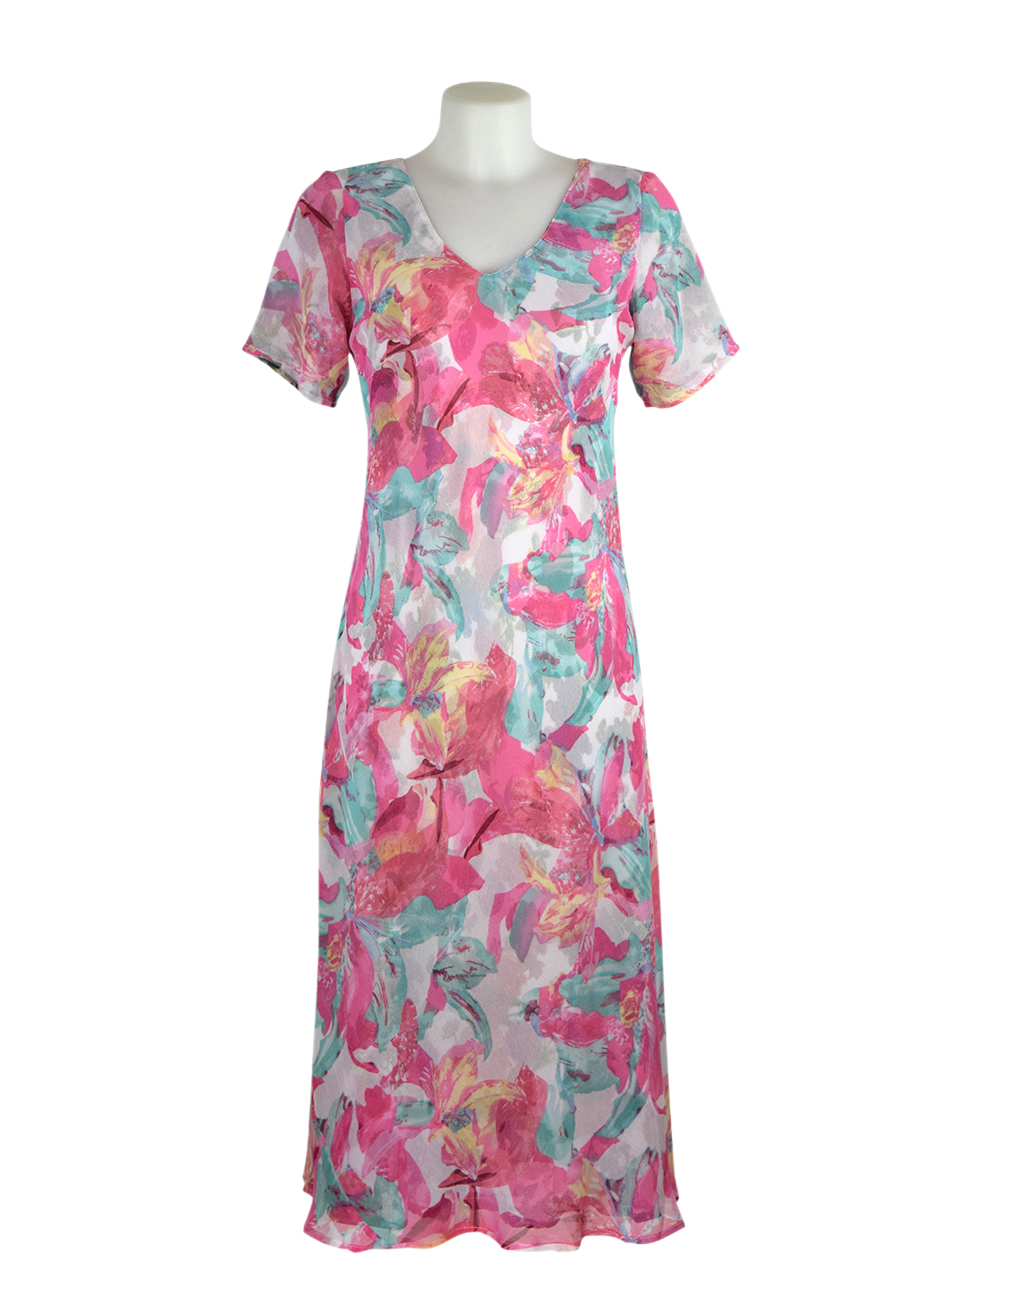 paramore 2in1 dress flower print